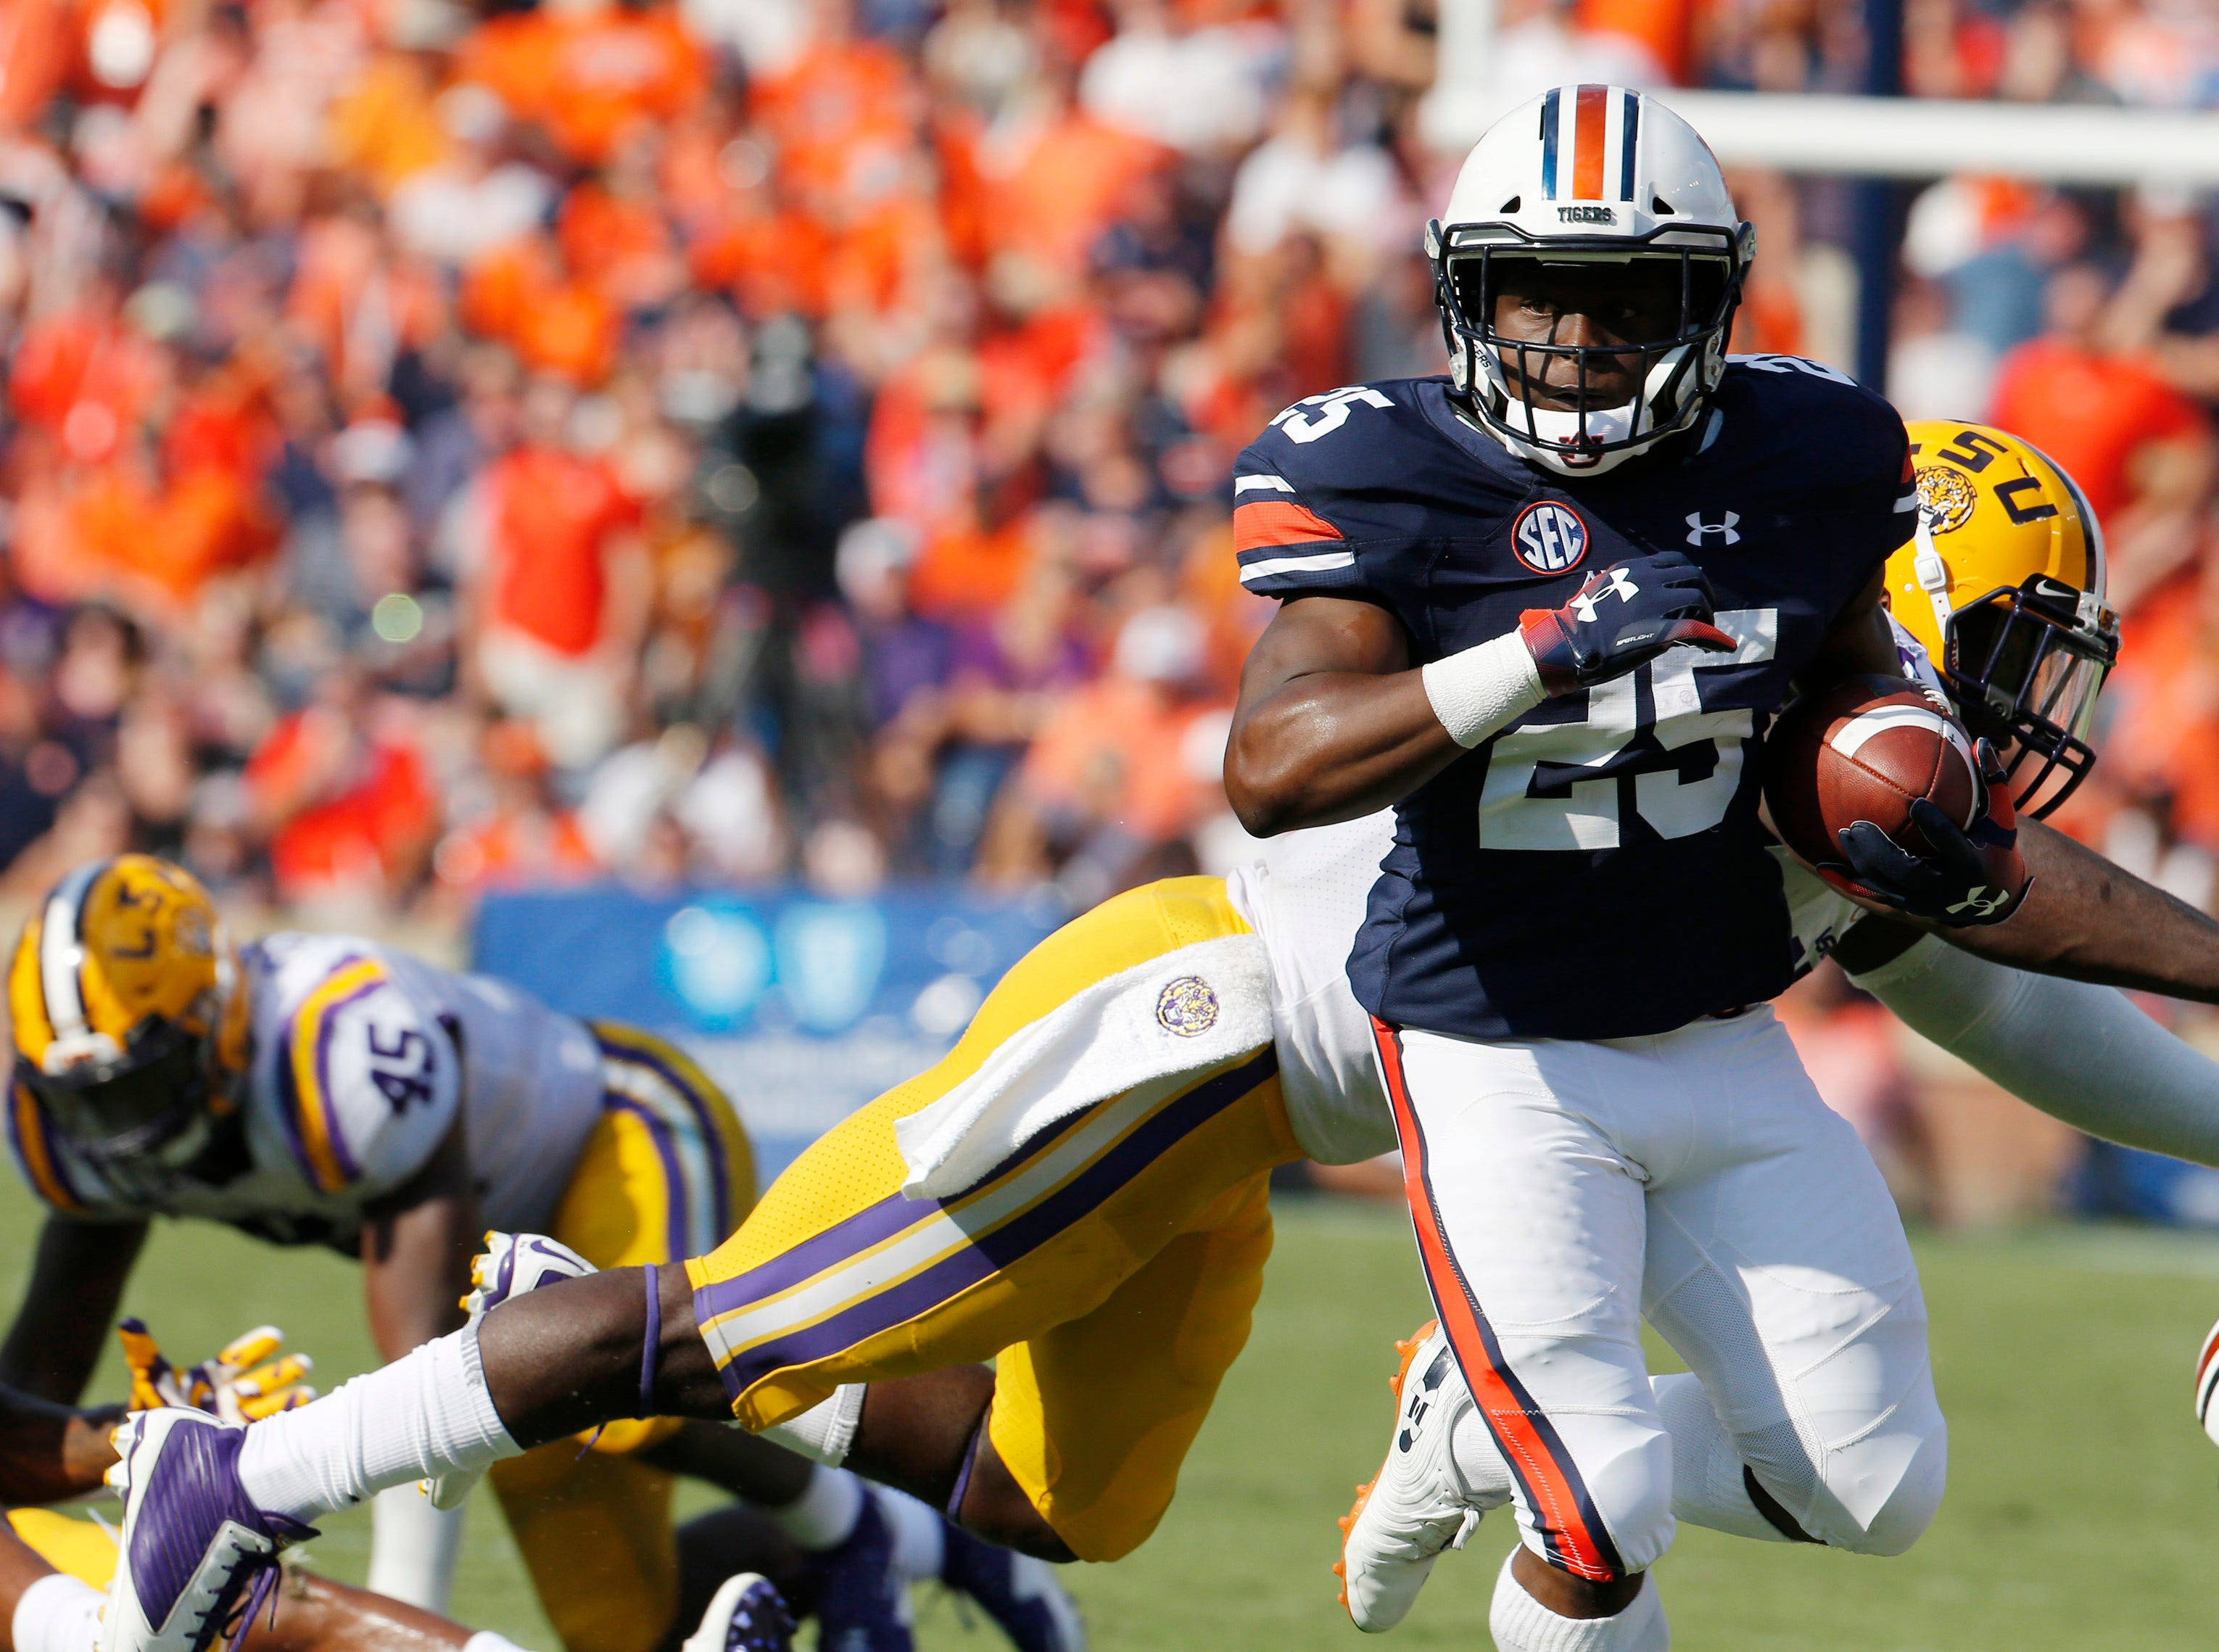 Sep 15, 2018; Auburn, AL, USA; Auburn Tigers running back Shaun Shivers (25) carries against the LSU Tigers during the second quarter at Jordan-Hare Stadium. Mandatory Credit: John Reed-USA TODAY Sports